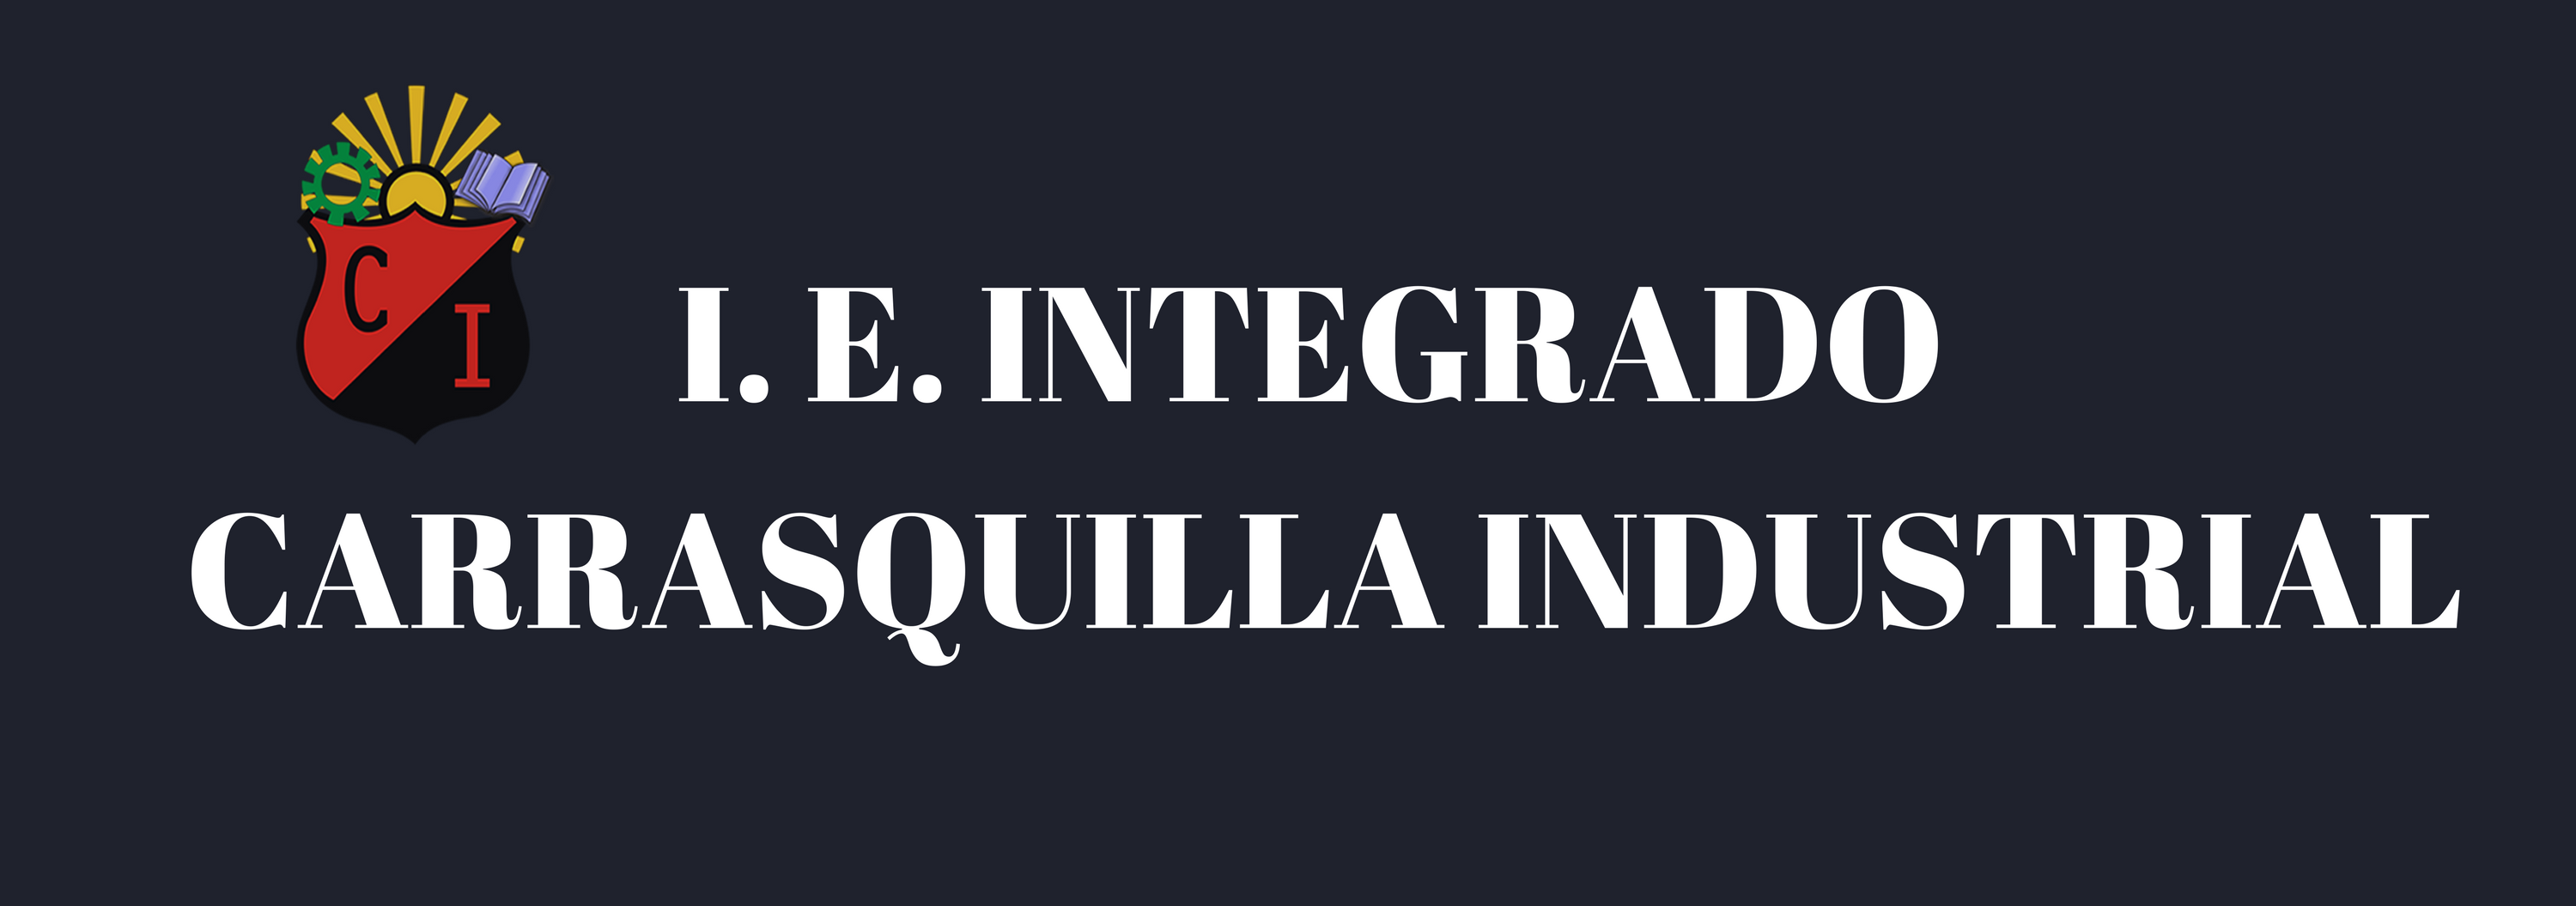 i.-e.-integrado-carrasquilla-industrial-2.png